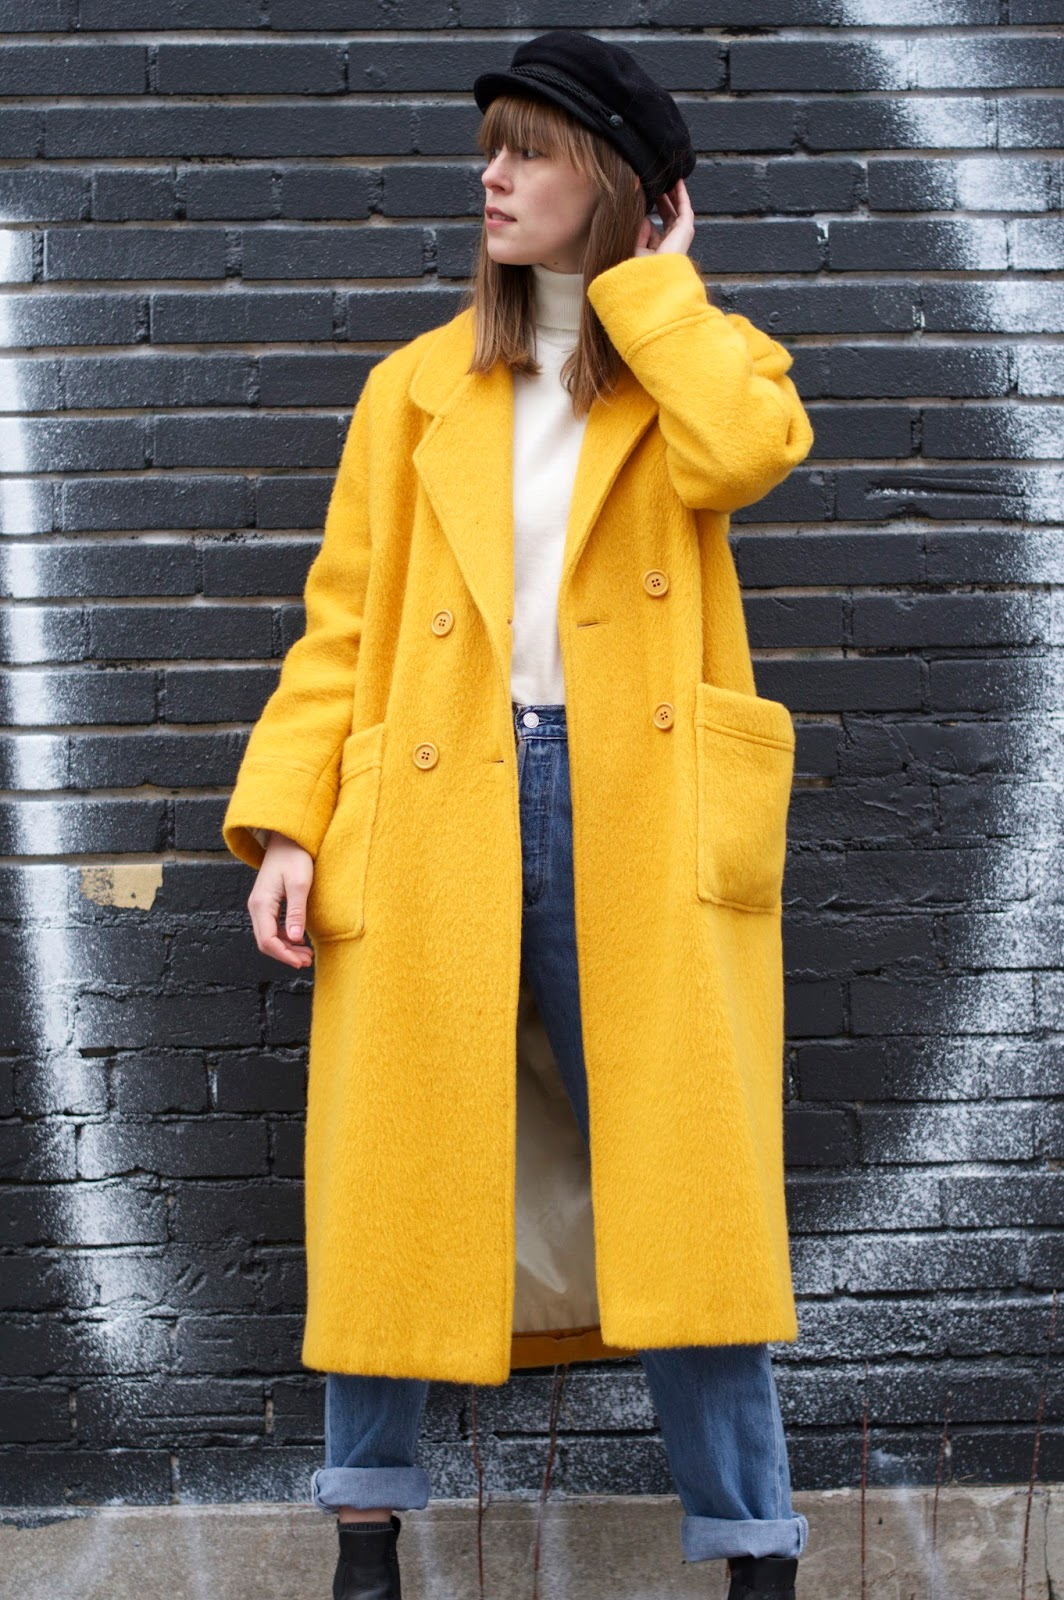 I'm wearing a yellow wool coat